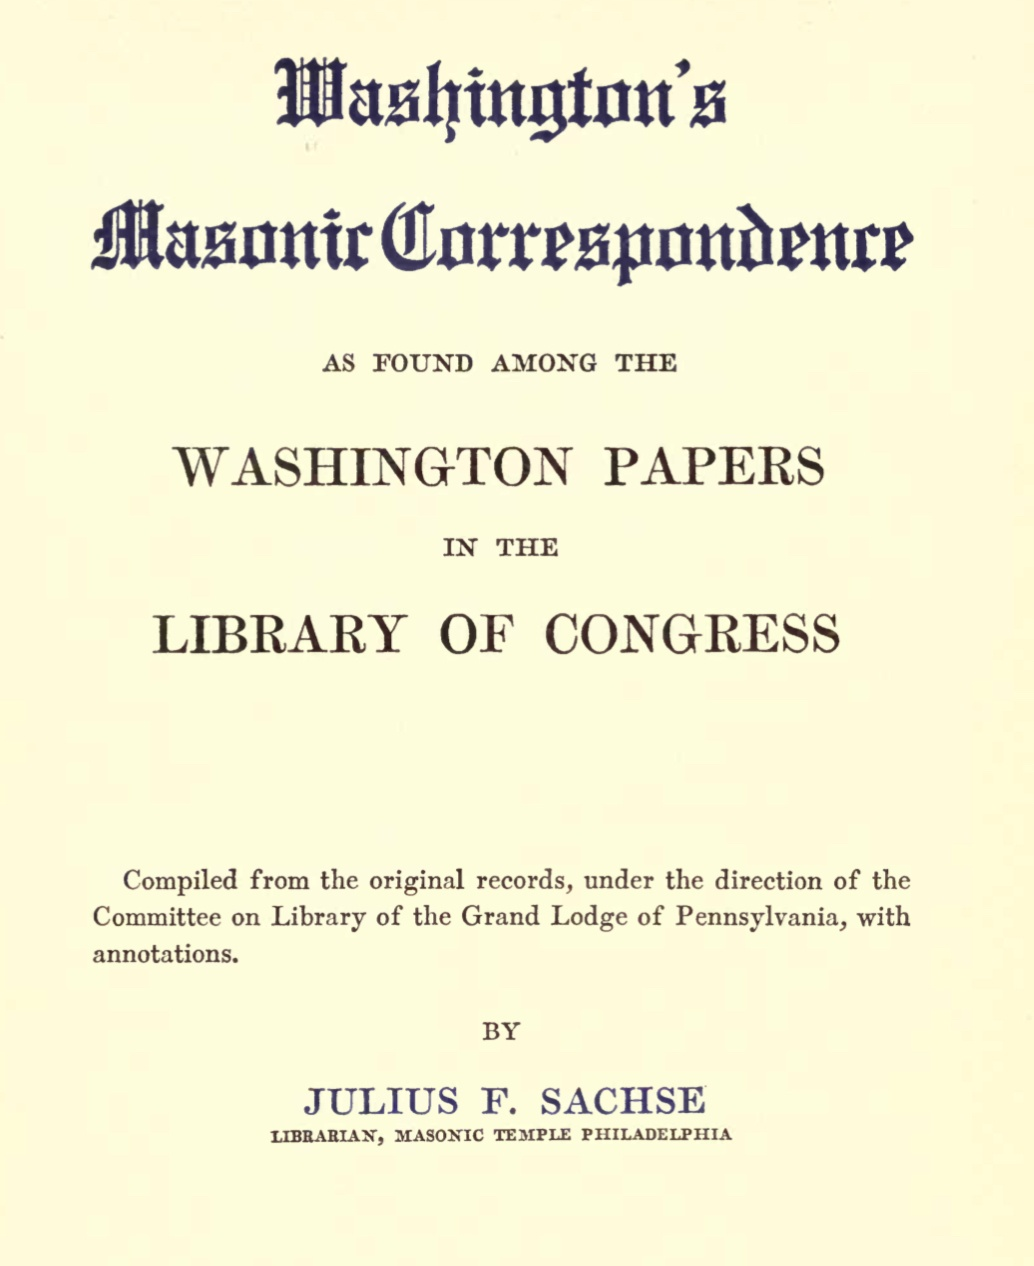 Washingtons Masonic Correspondance - J F Sachse - 1915.pdf (page 2 of 201) 2019-01-26 07-32-04